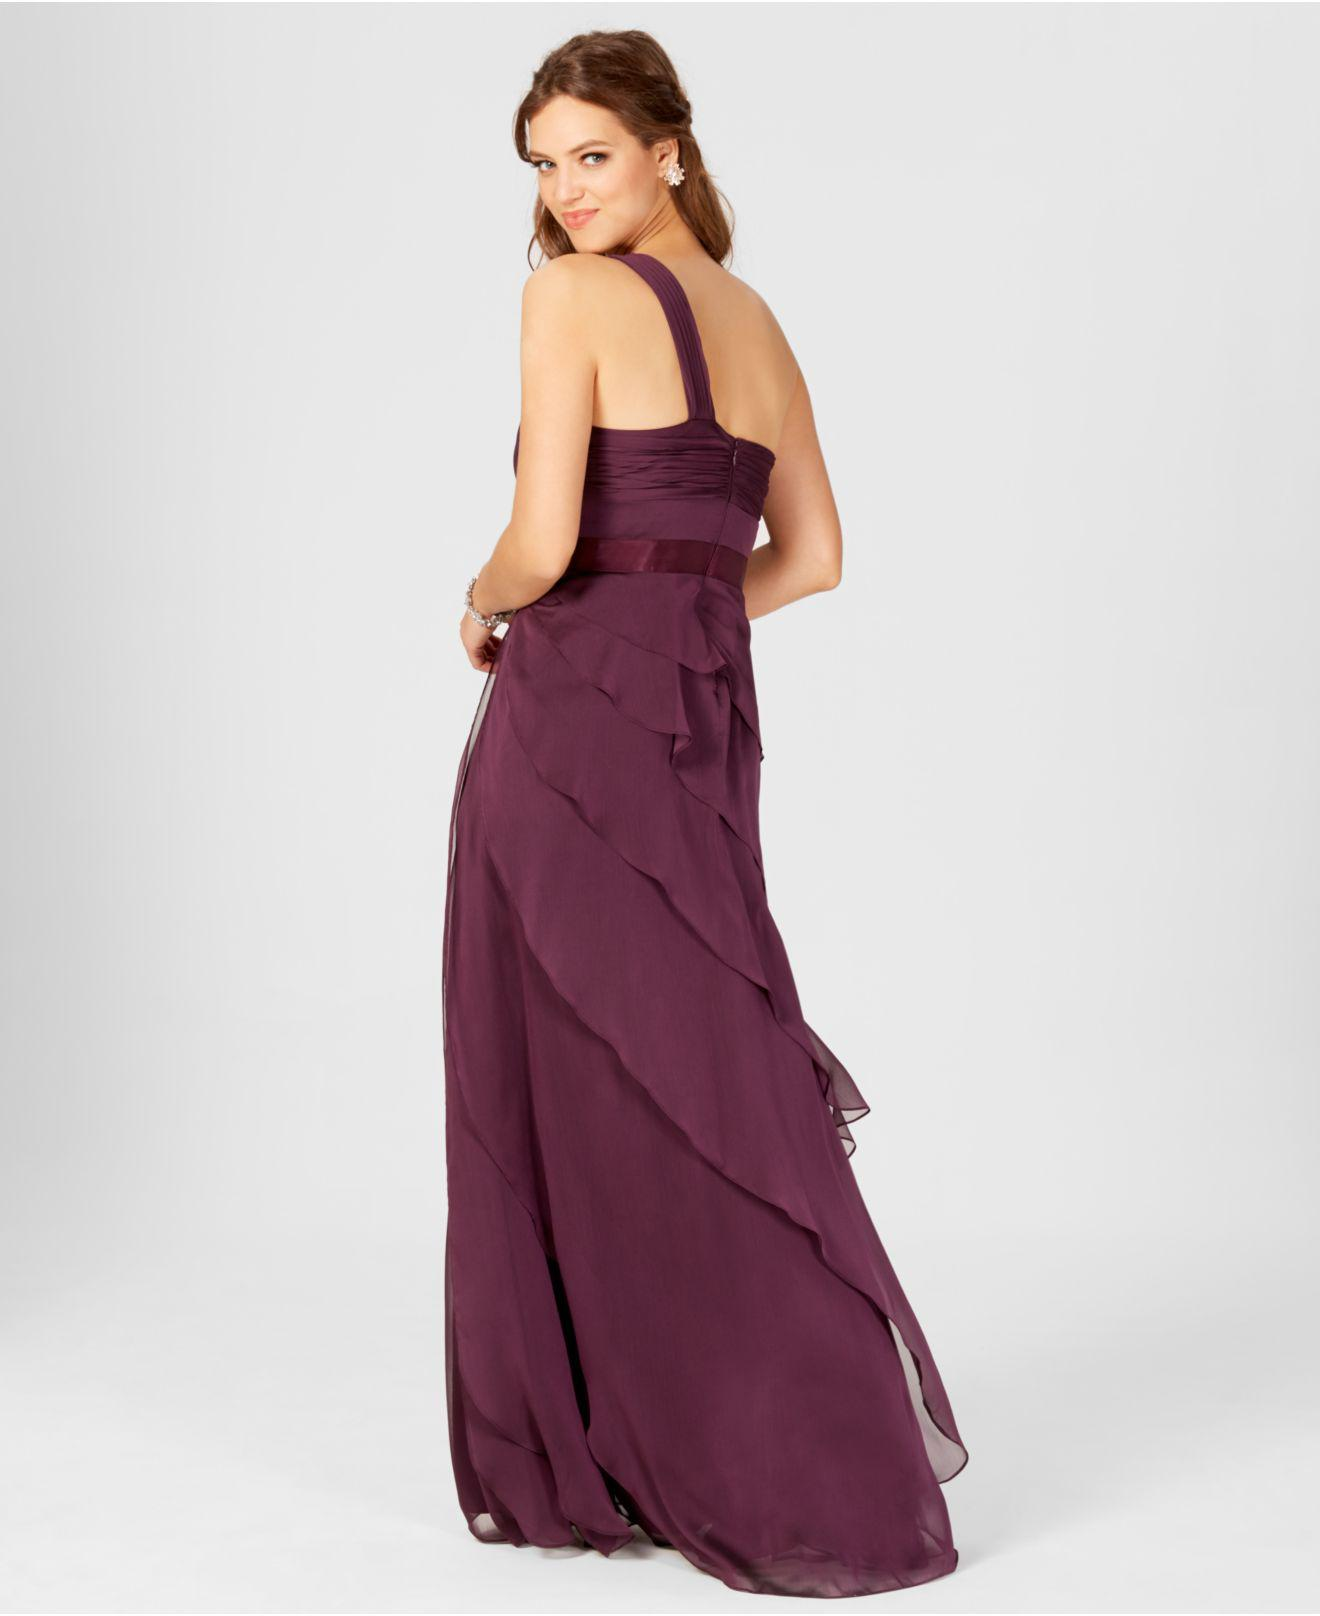 Lyst - Adrianna Papell One-shoulder Tiered Chiffon Gown in Purple